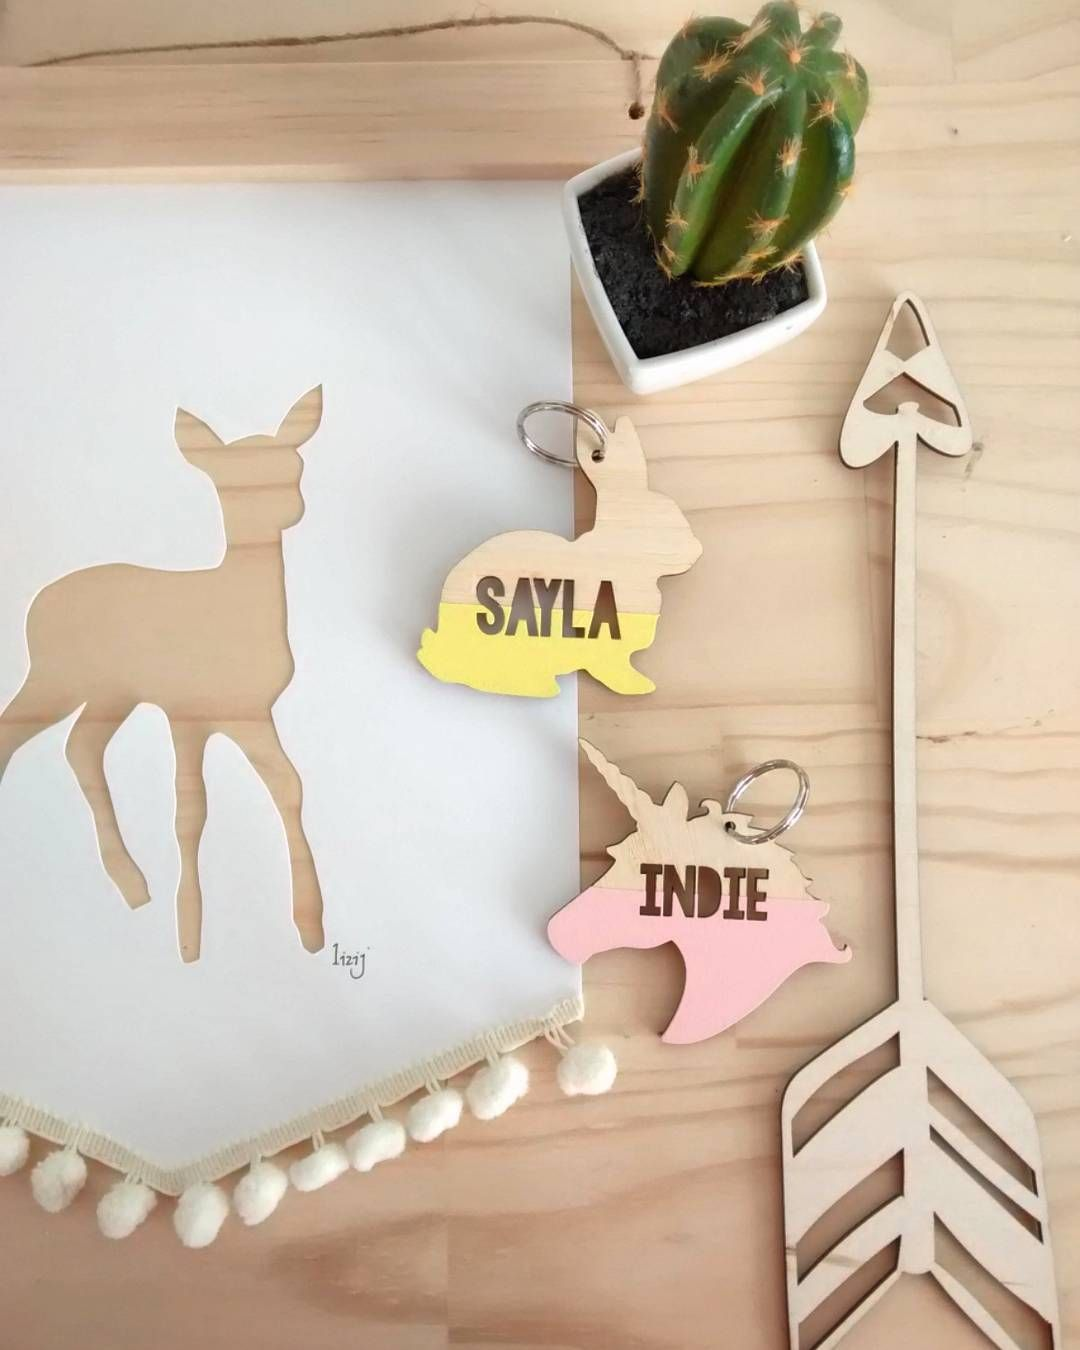 Love my girls new school bag tags from @lovefromseventeen  and our Bambi art is heading to its new home. Let me know if you want one.  #creative #flatlay #nzmade #deer #unicorn #bunny #tags #handmade #art #simplicity #style #wood #cutout #bambi #animal #cactus #texture #kids decor #decor #wallart #wallhanging by l.i.z.i.j